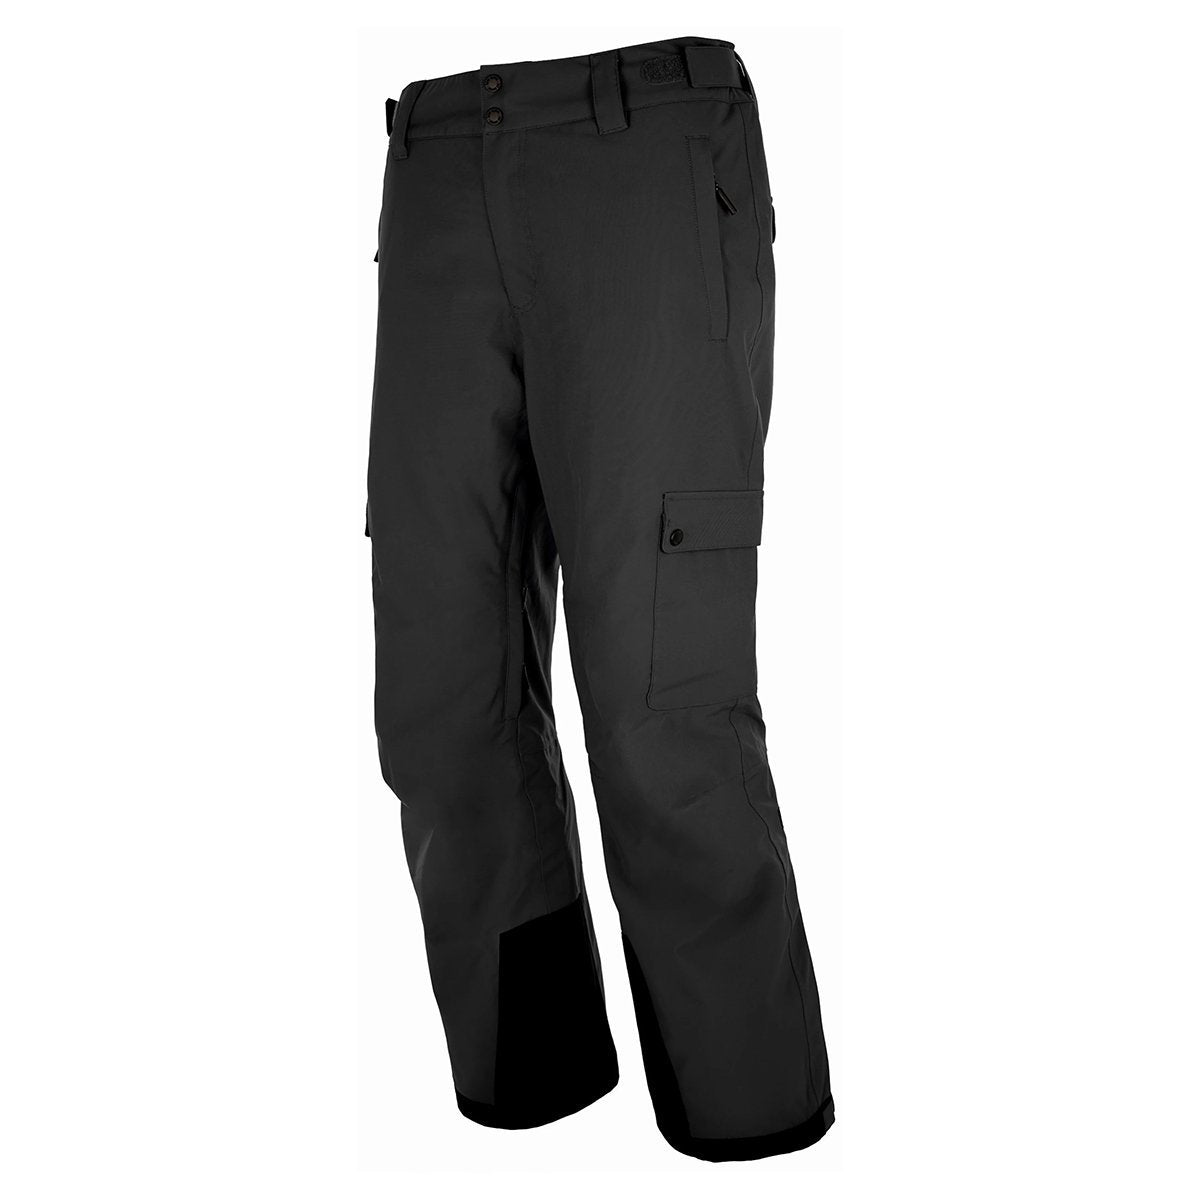 MO-GTP101B-S, Planks, Men's Good Times Insulated Pant, Black, Mens Ski Trousers